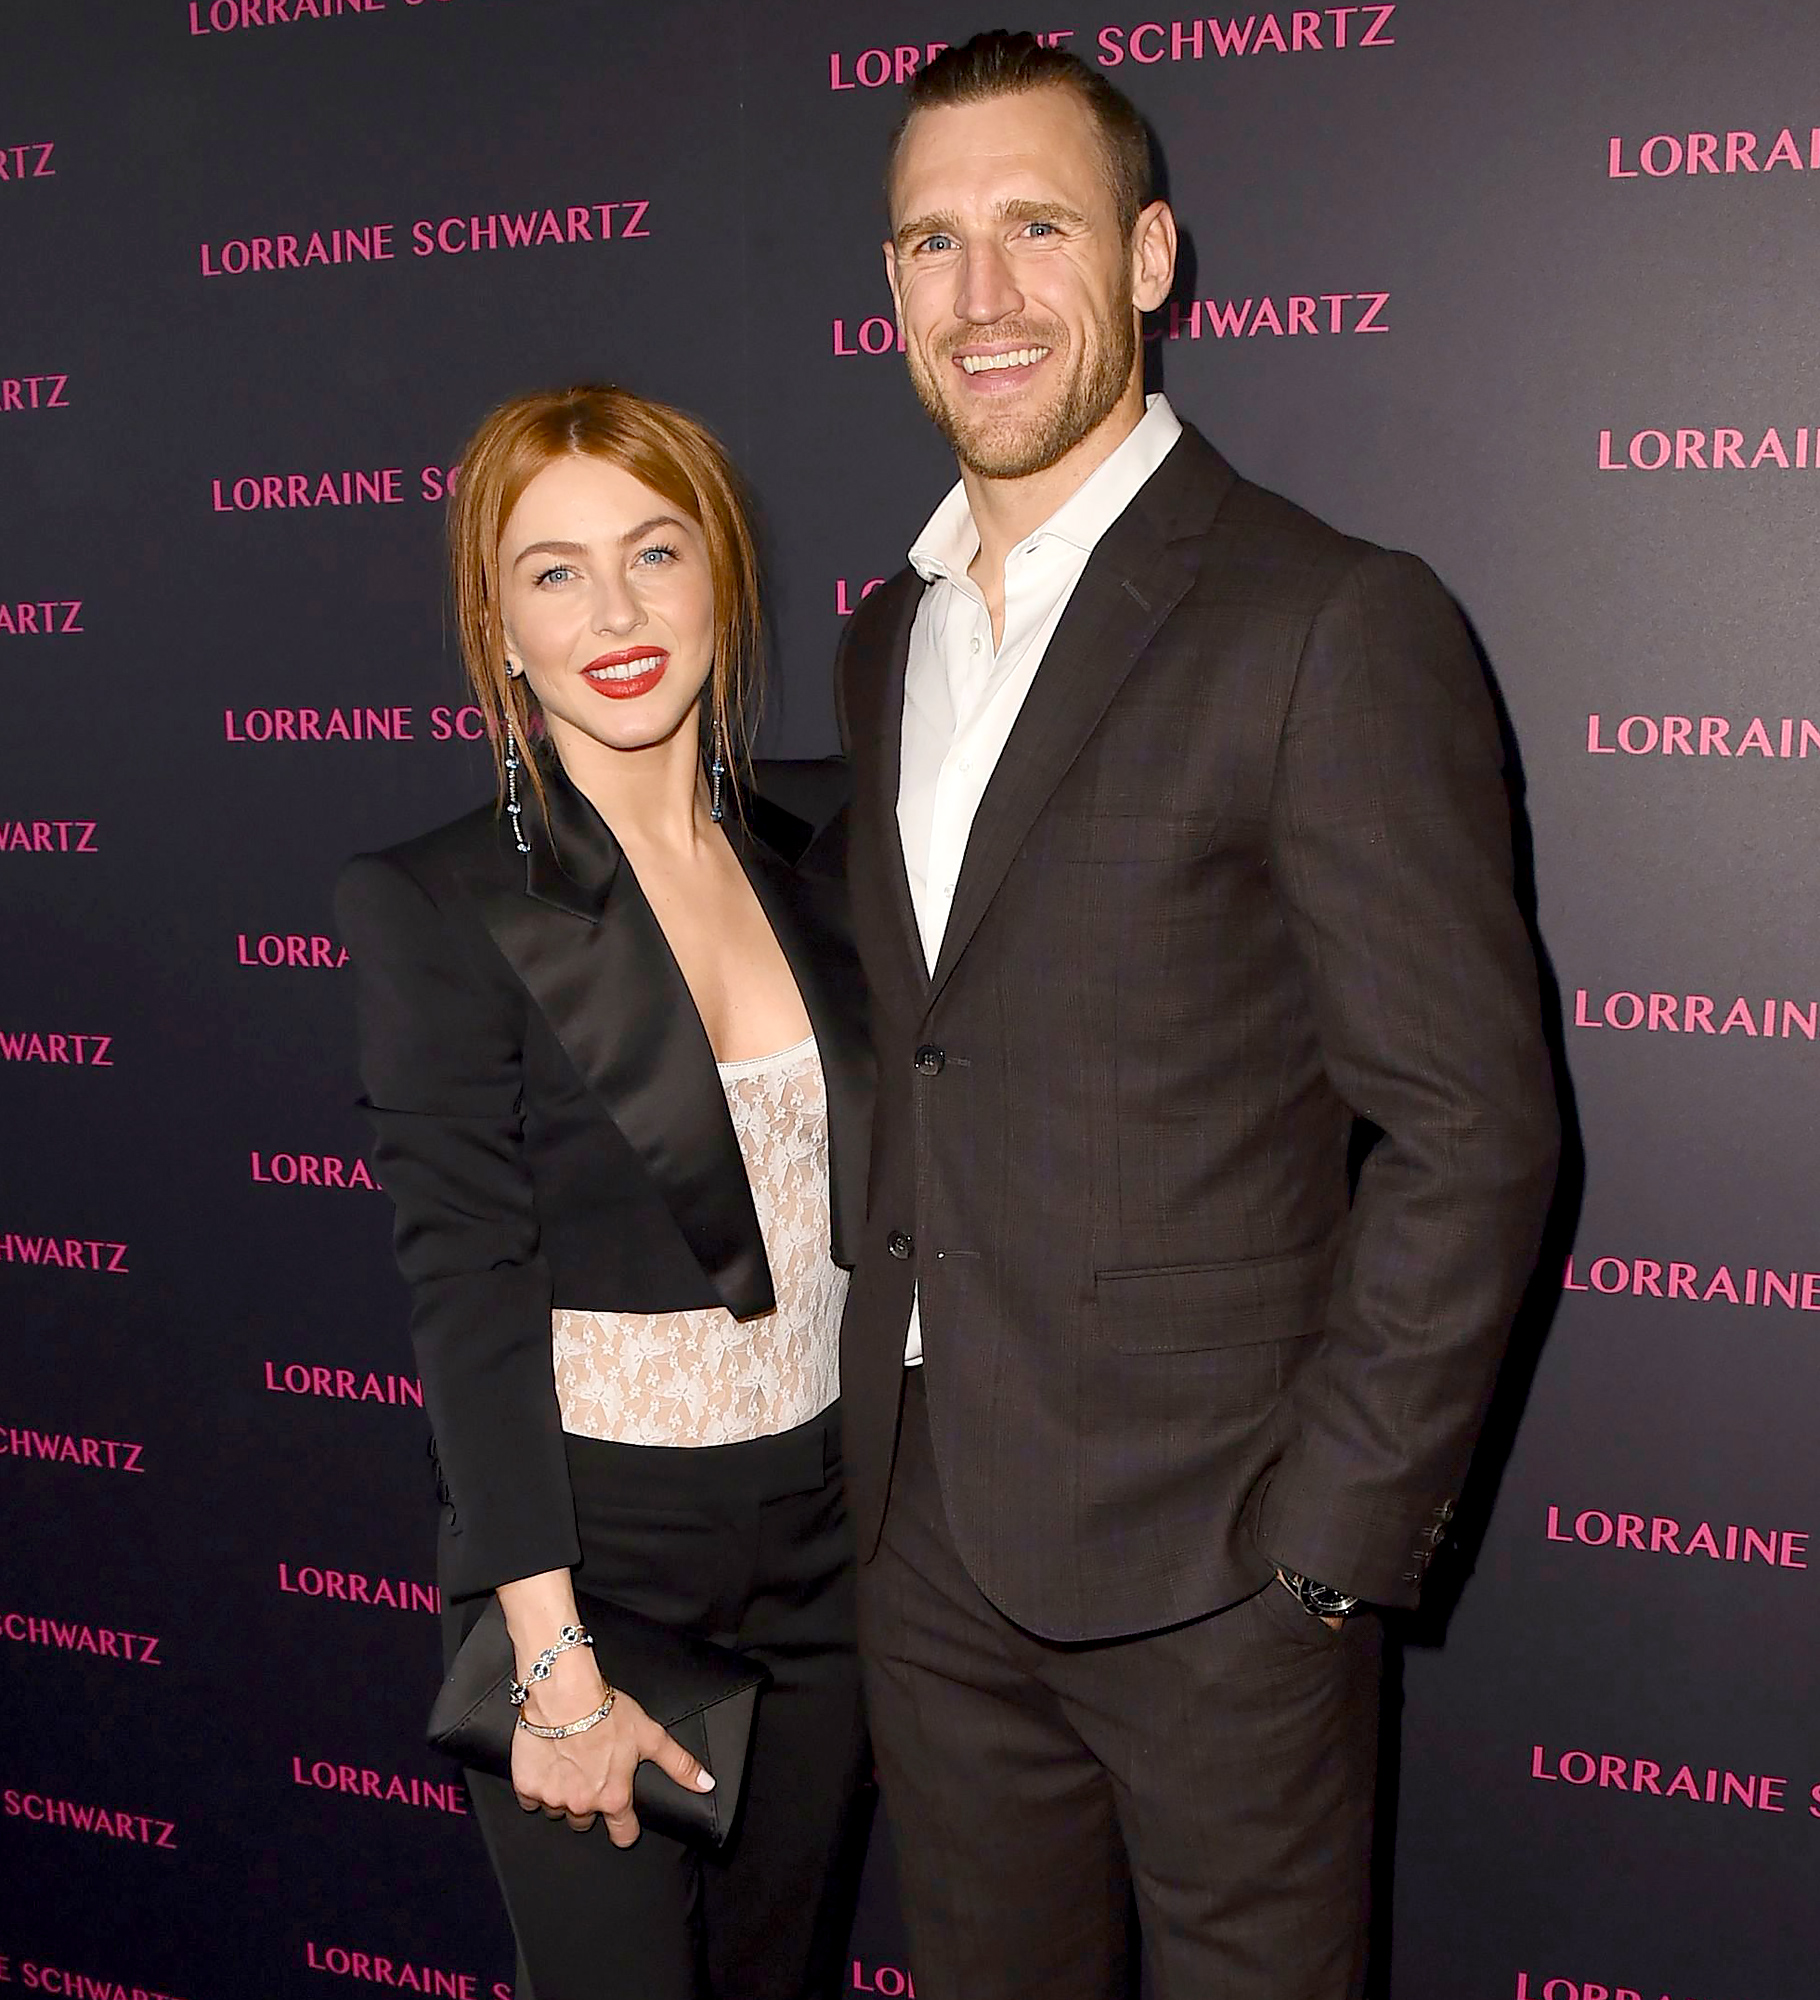 Brooks Laich Reveals What's Most Attractive to Him 1 Month After Split 2